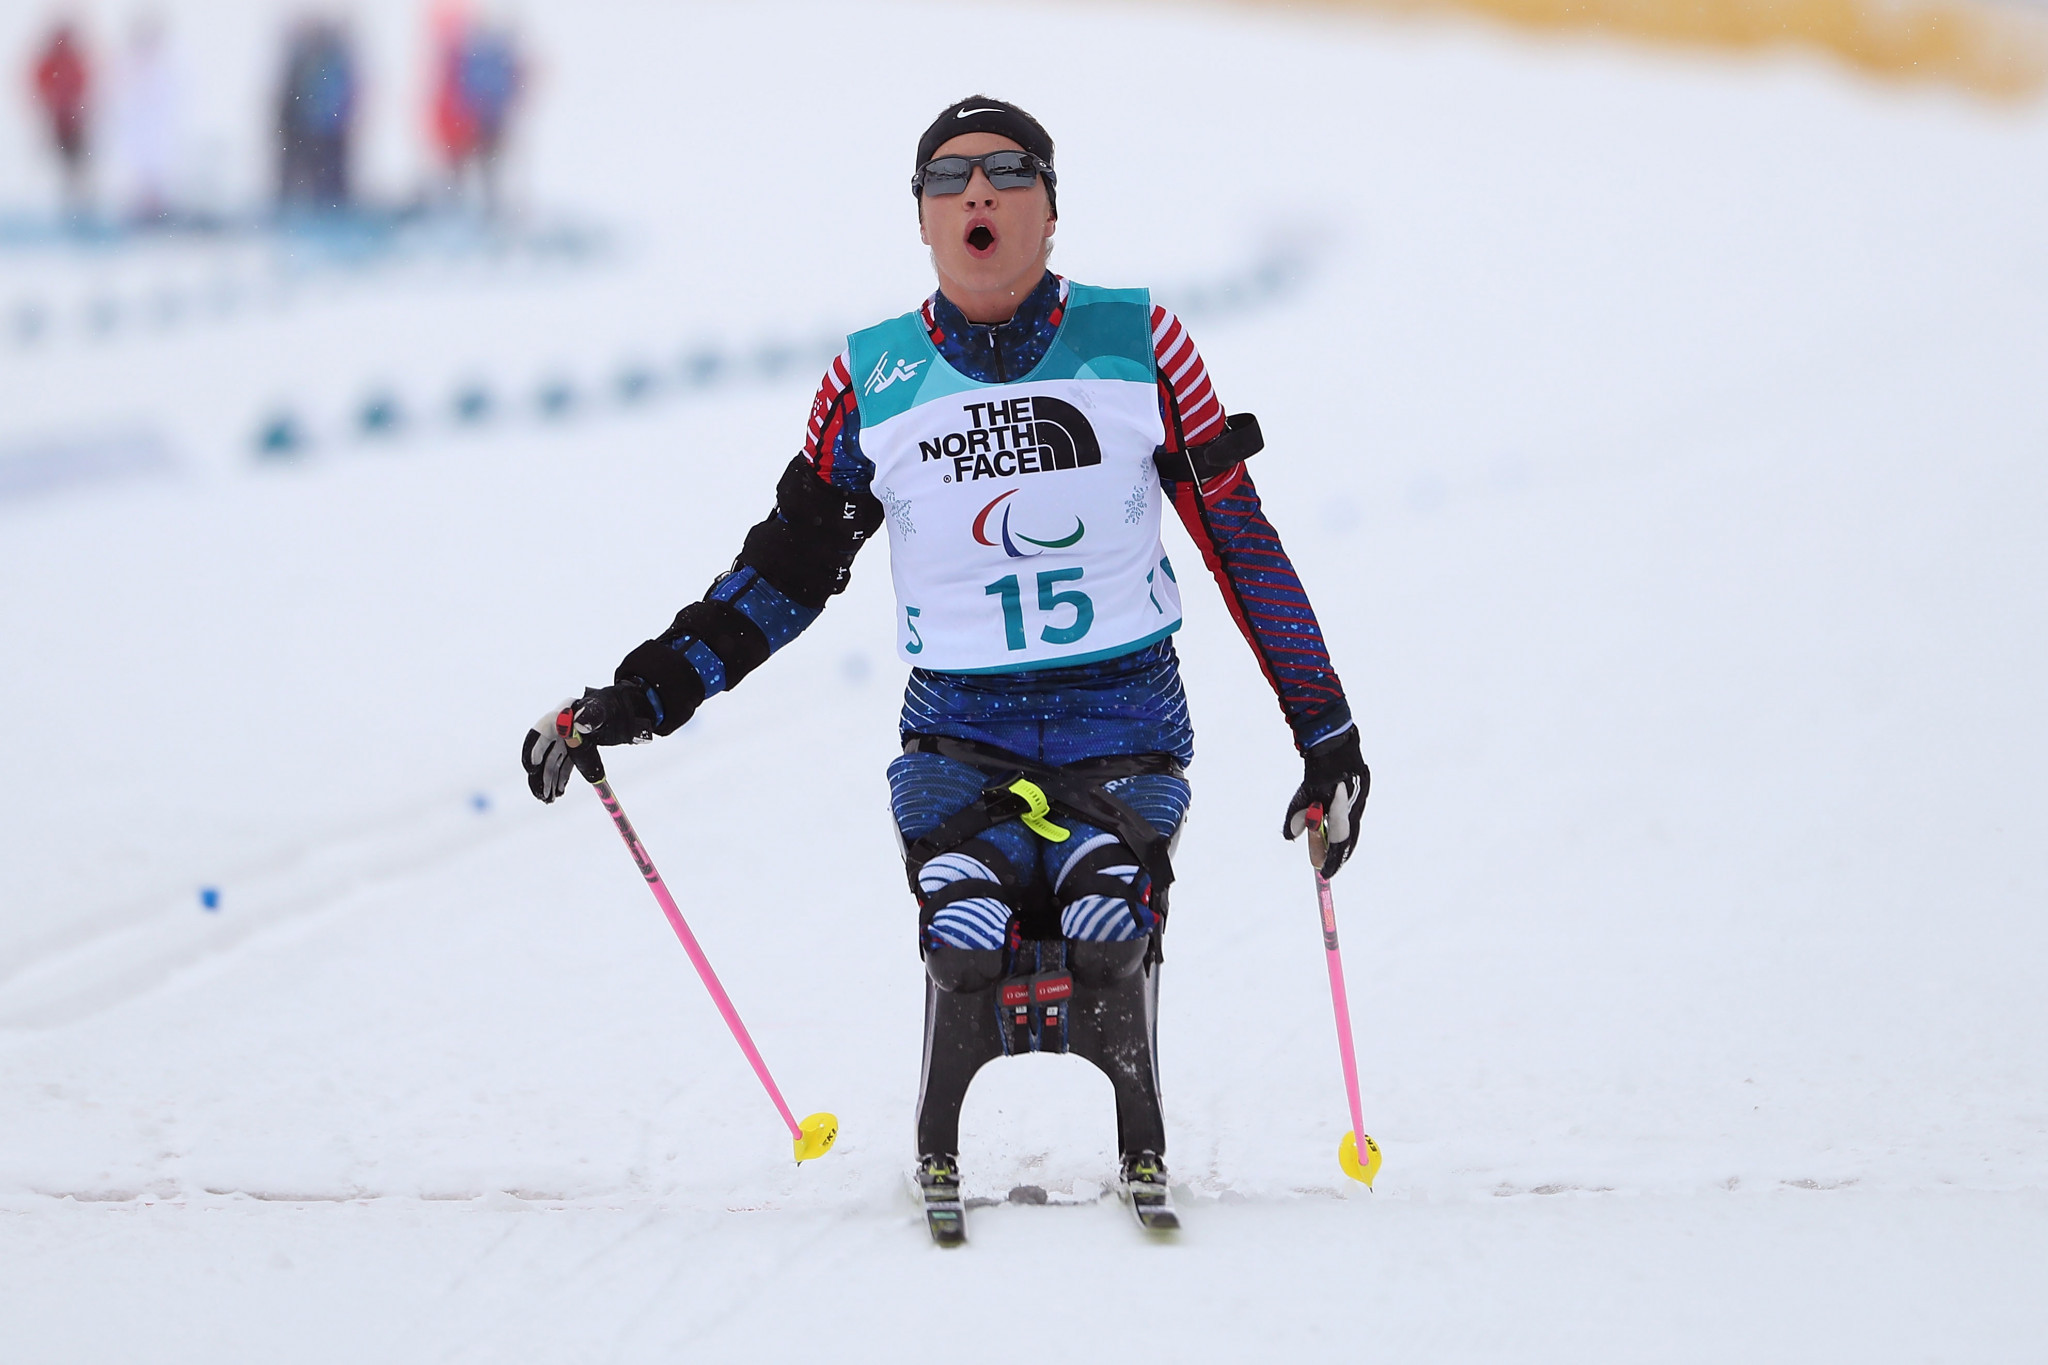 Paralympic champion Masters earns gold at World Para Nordic Skiing World Cup